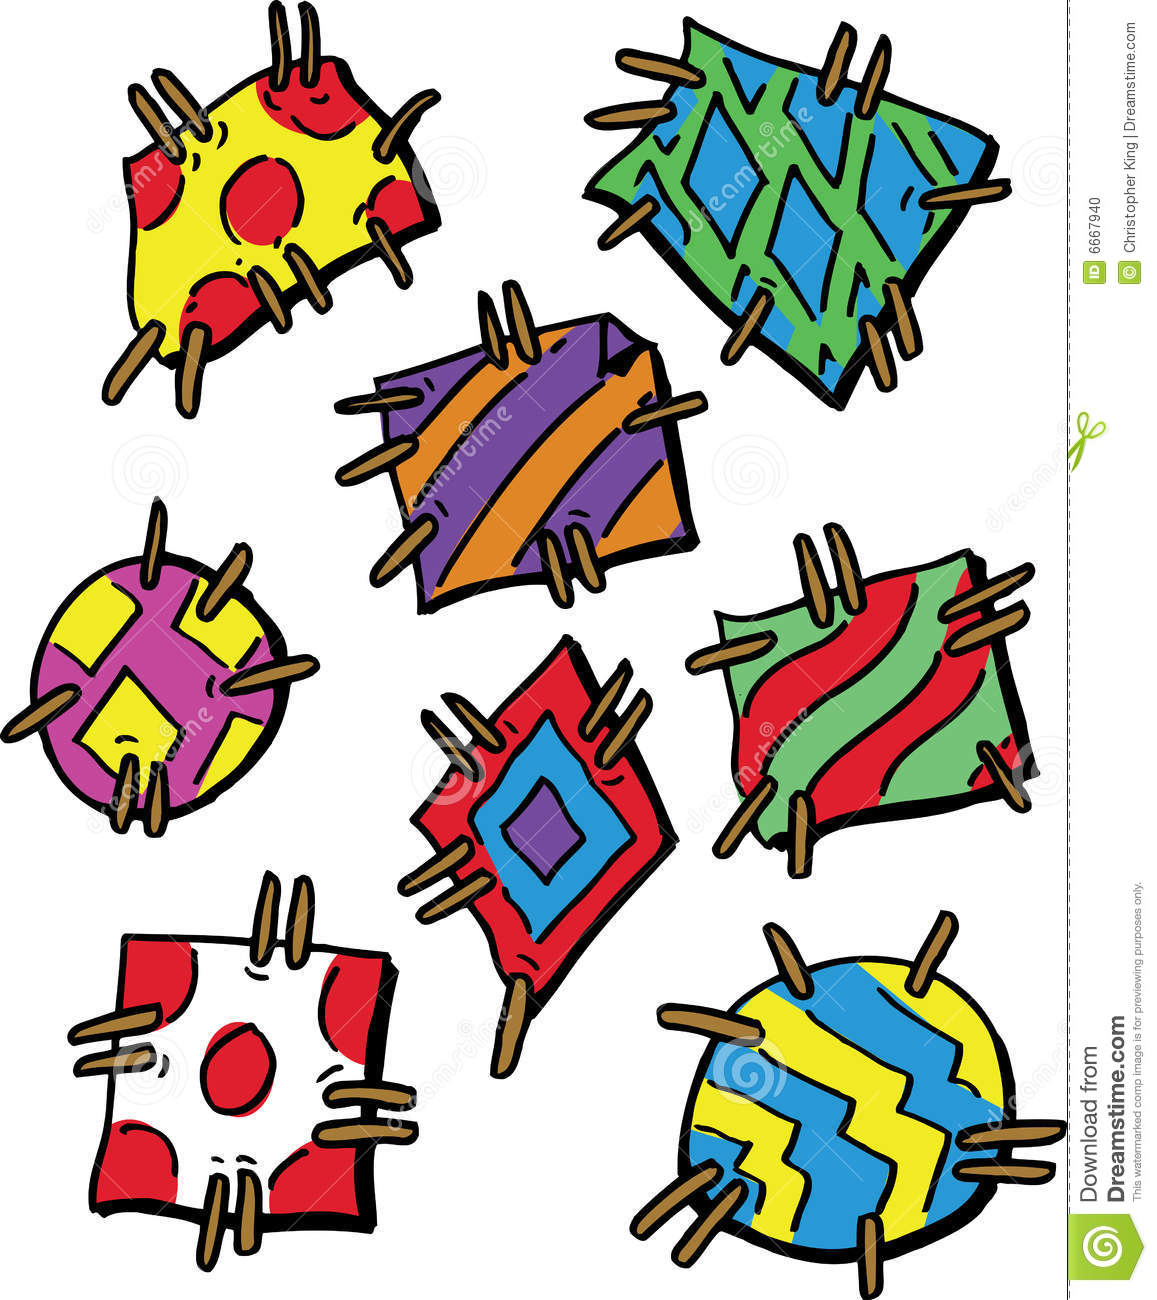 colourful cartoon style patches stock photo image 6667940 owl clip art template owl clip art coloring pages